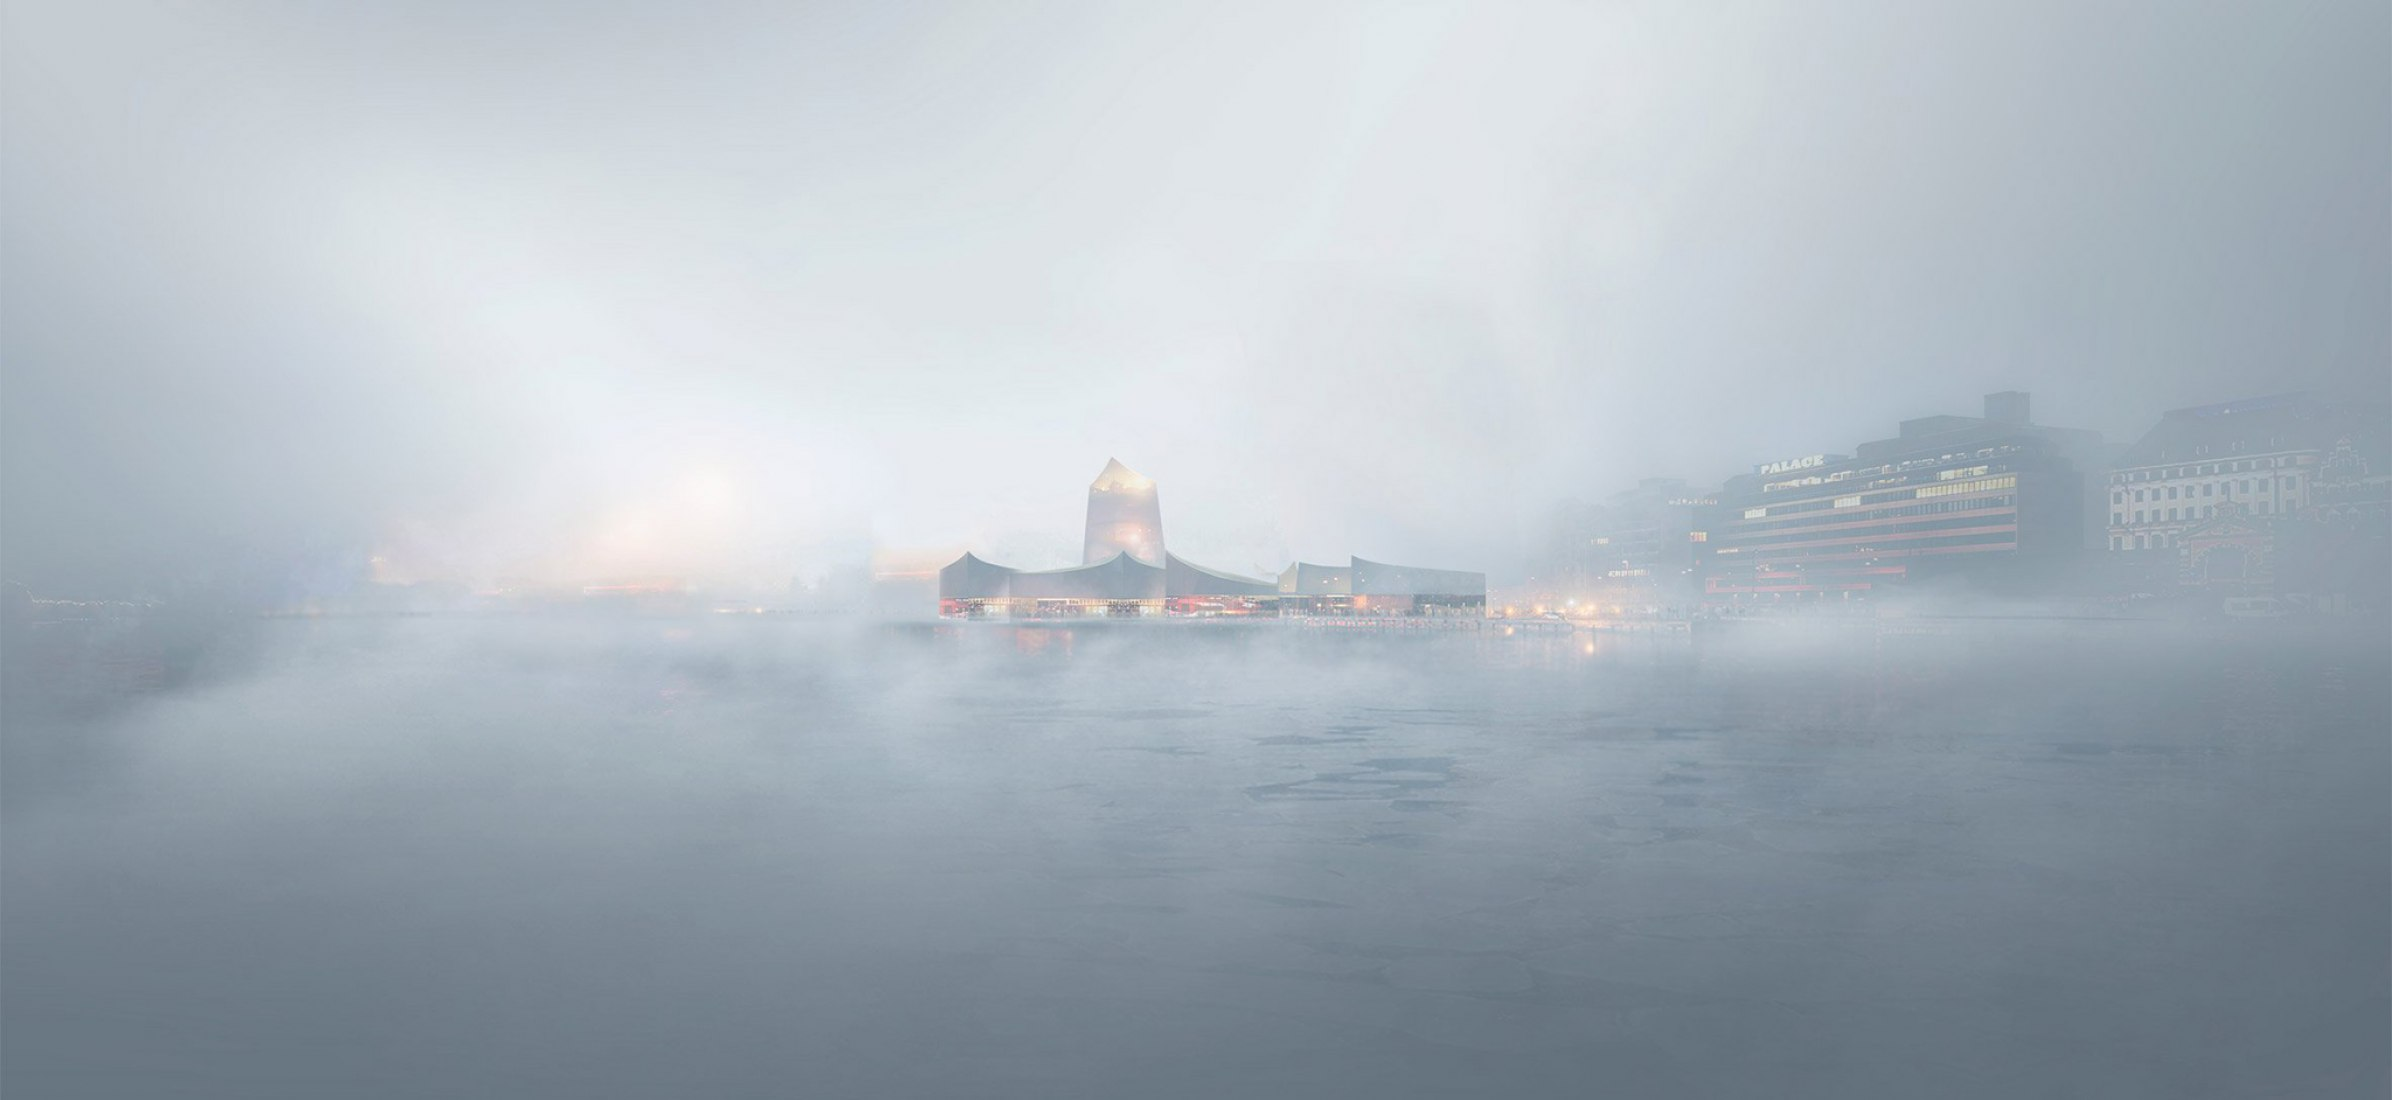 A rendering of the design for the new Guggenheim Helsinki. Plans for the museum have been voted down. Image by Moreau Kusunoki Architectes